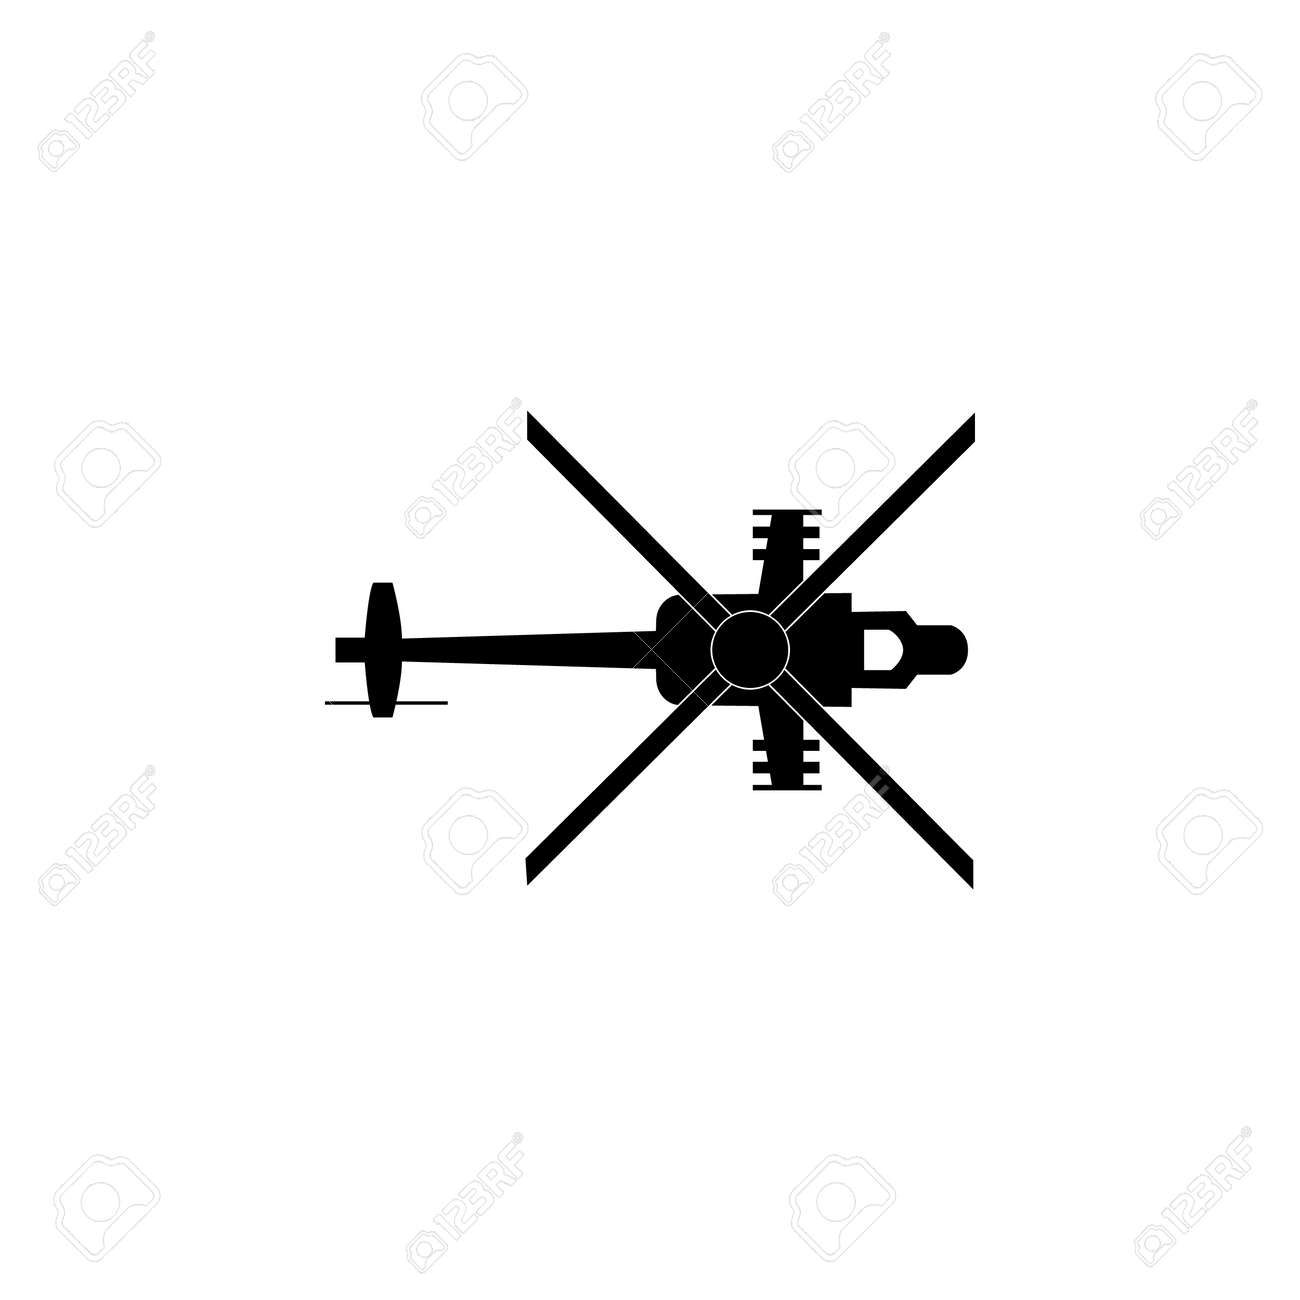 Military helicopter silhouette icon  Military tech element icon